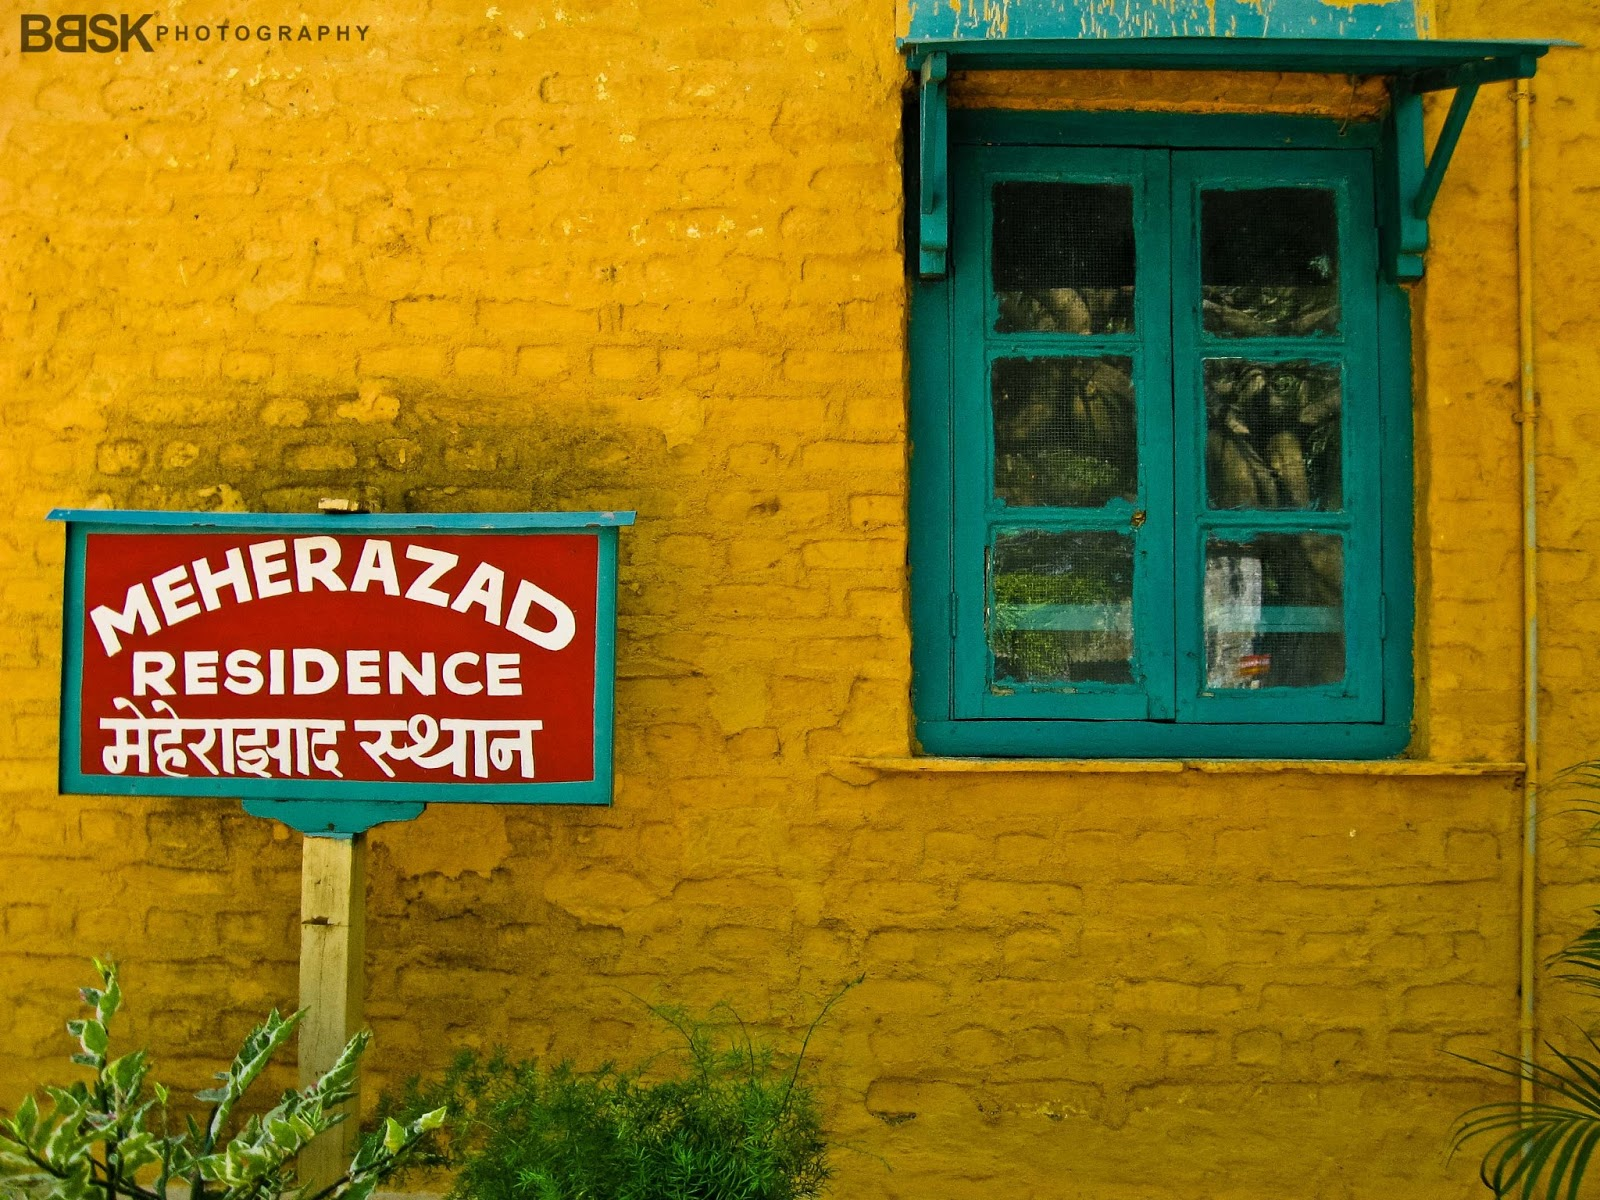 meherazad home of meher baba india